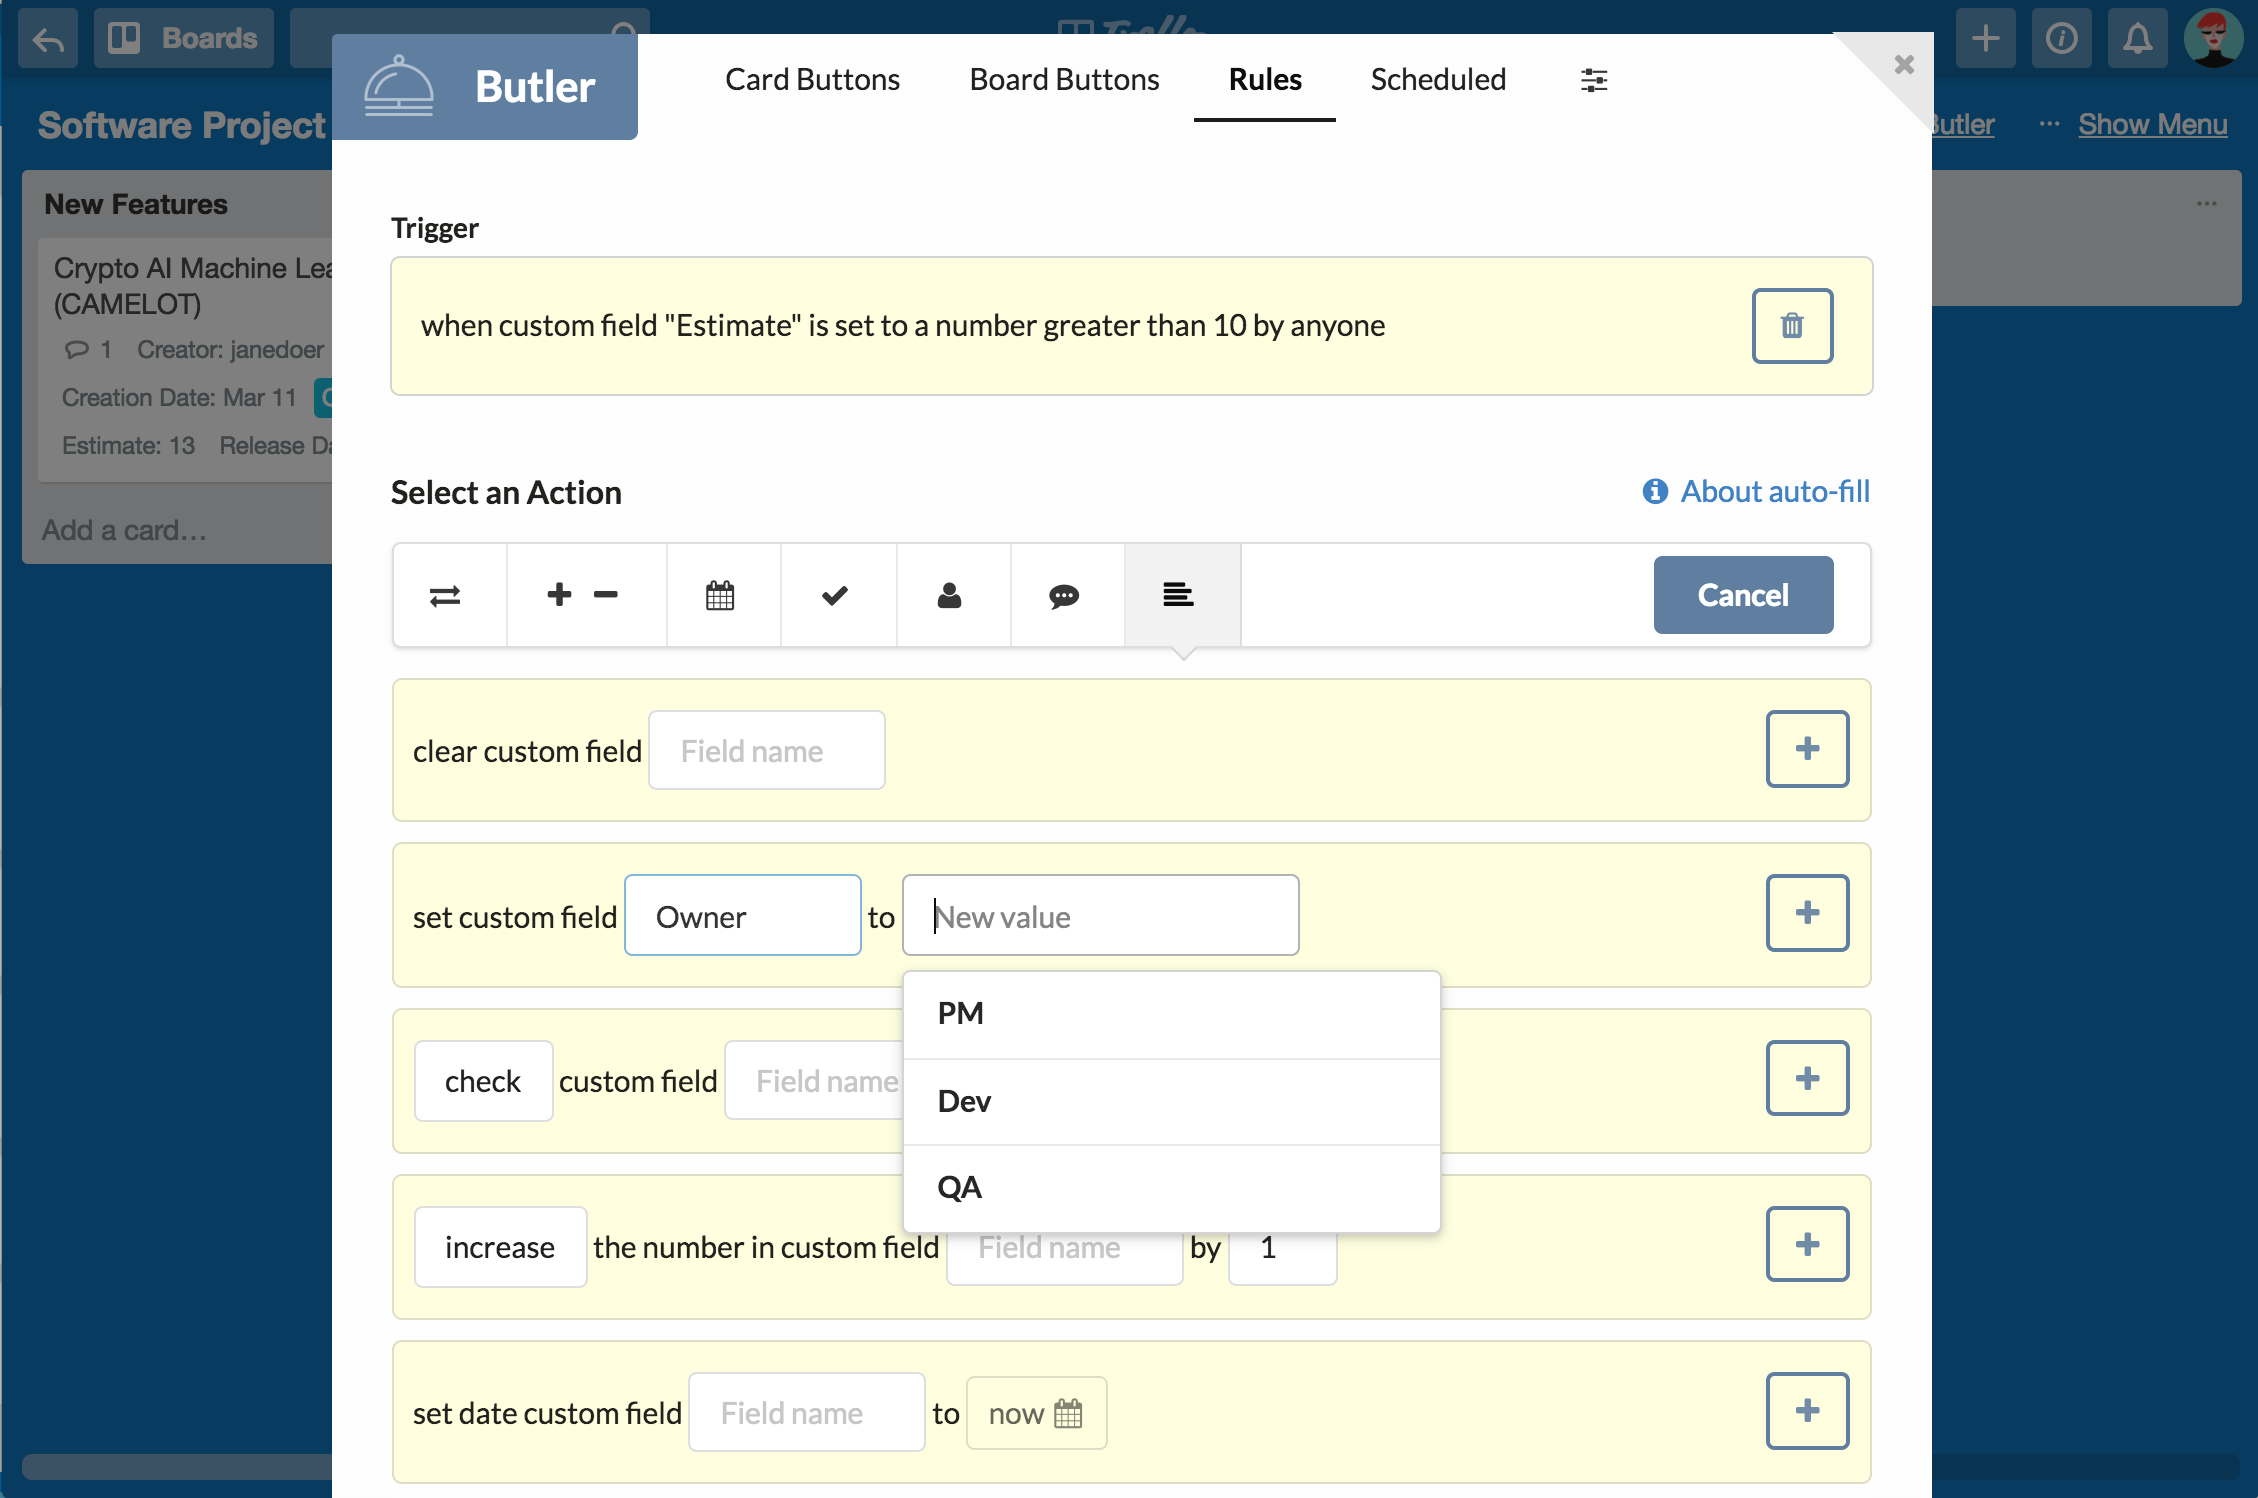 How to use Butler with Custom Fields in Trello